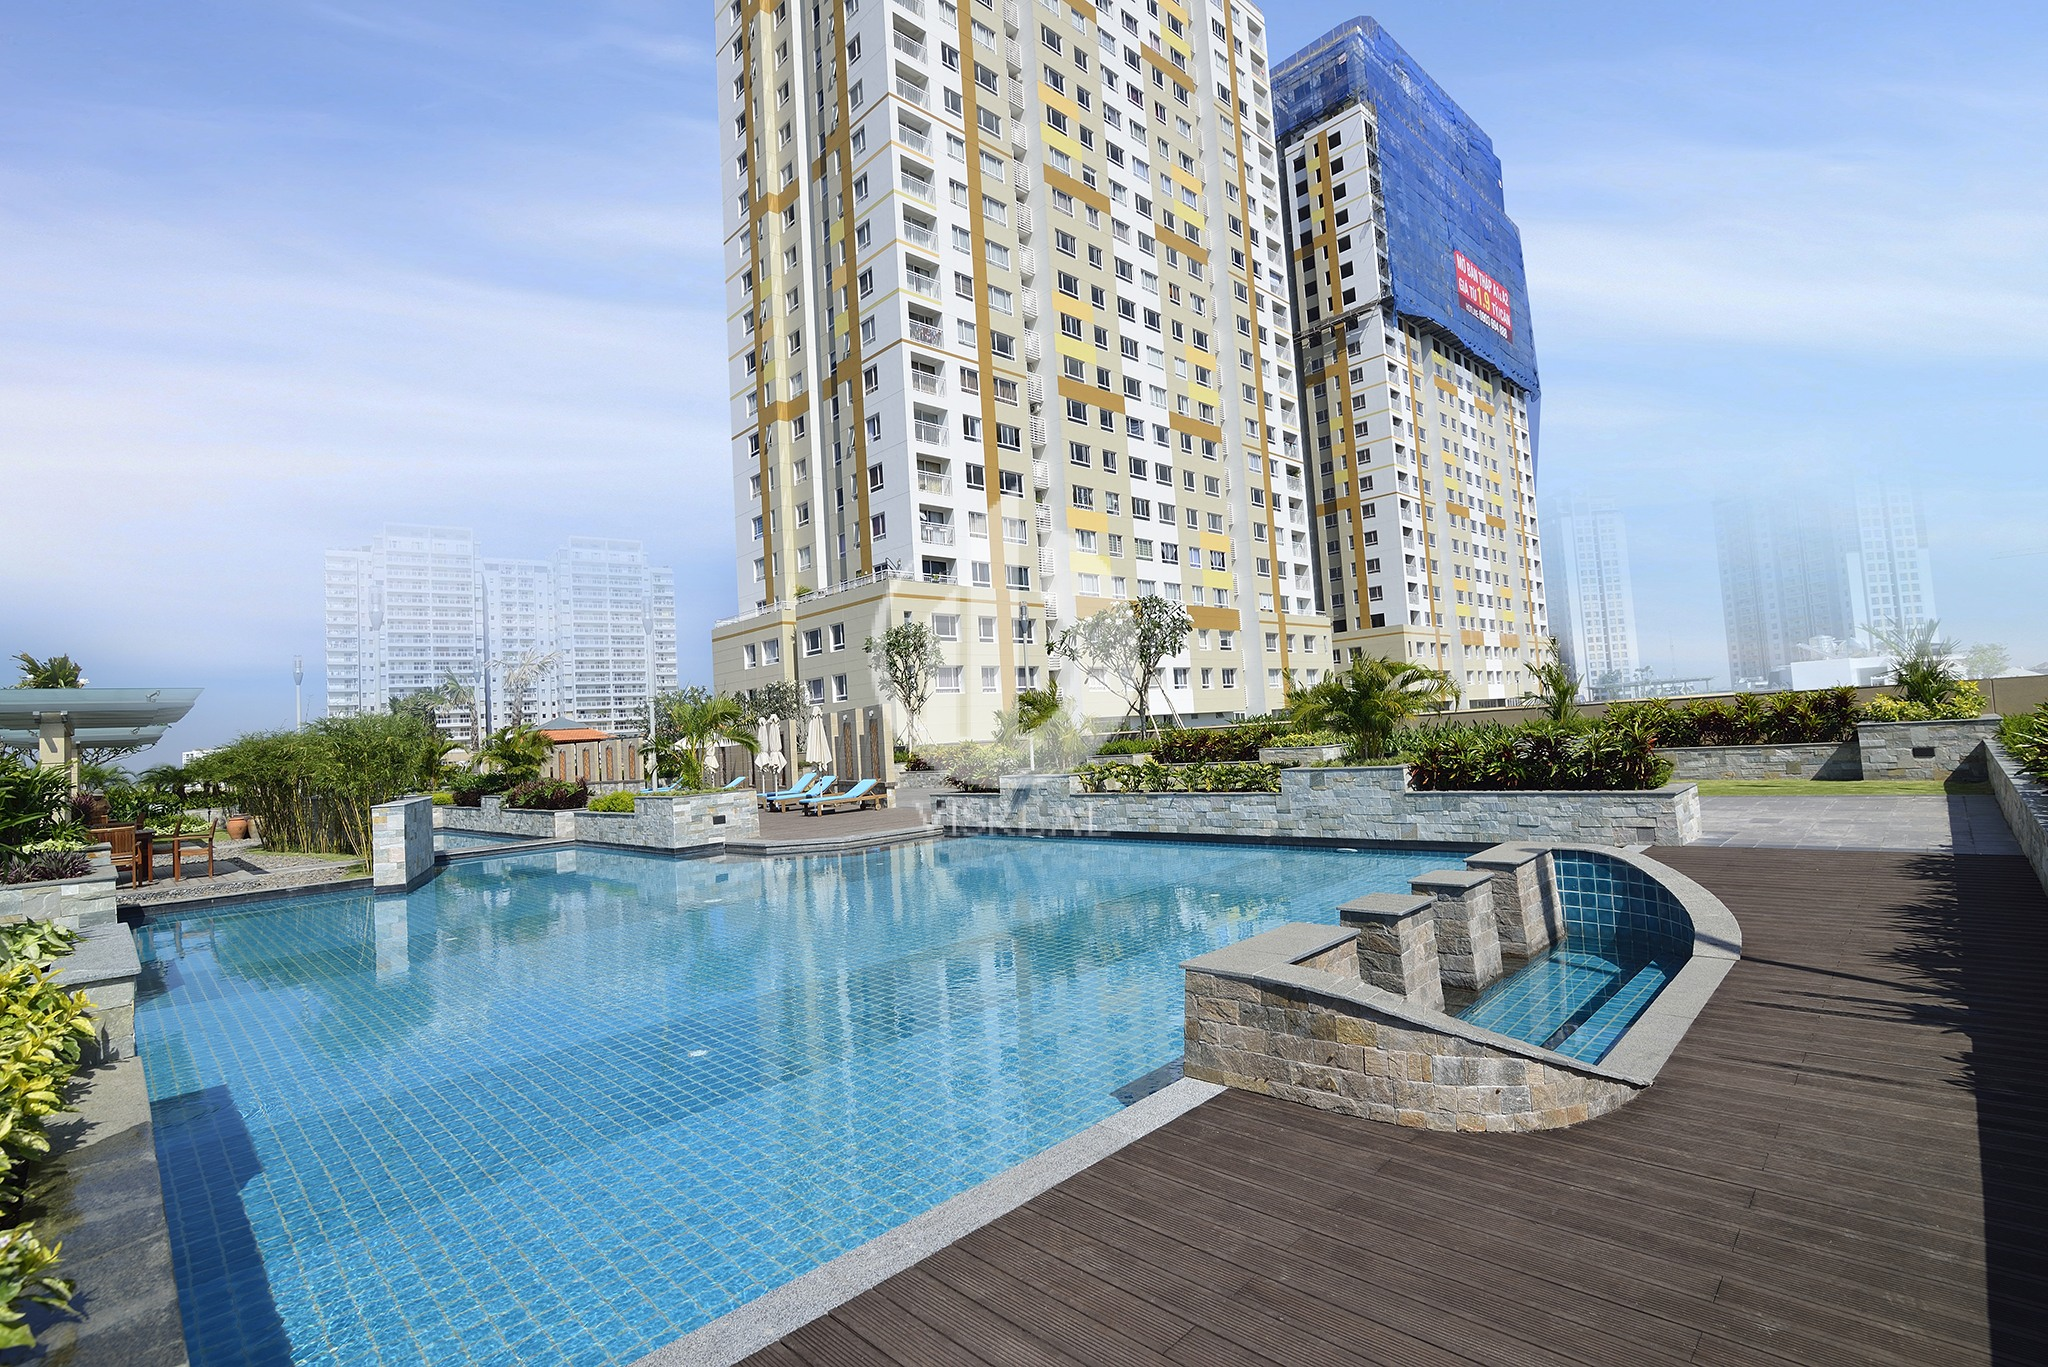 The swimming pools in Tropic Garden Thao Dien Apartment has an open space to welcome sunshine for a whole day.